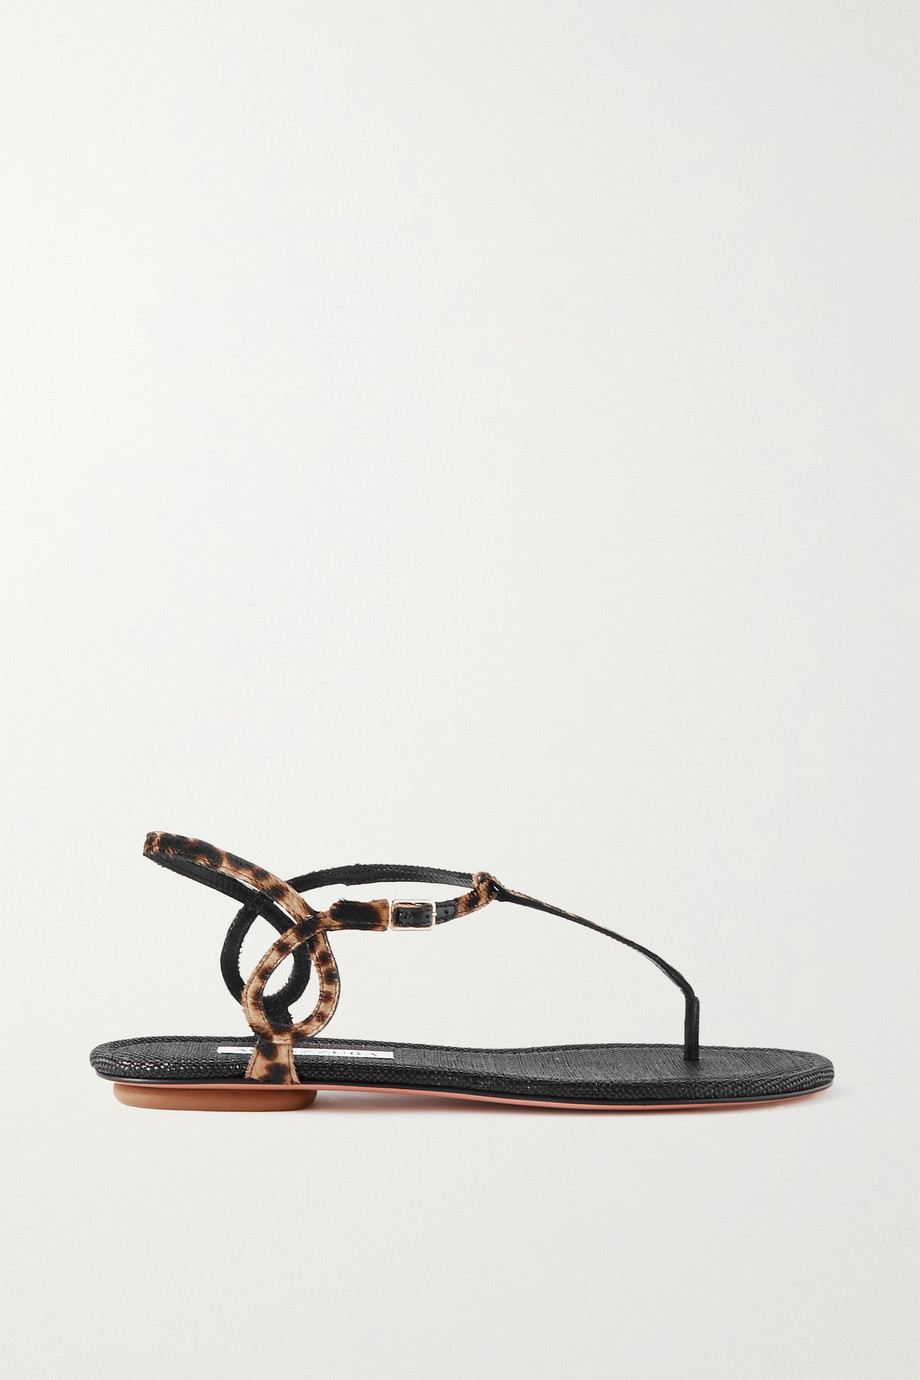 Aquazzura Almost Bare leopard-print calf hair sandals